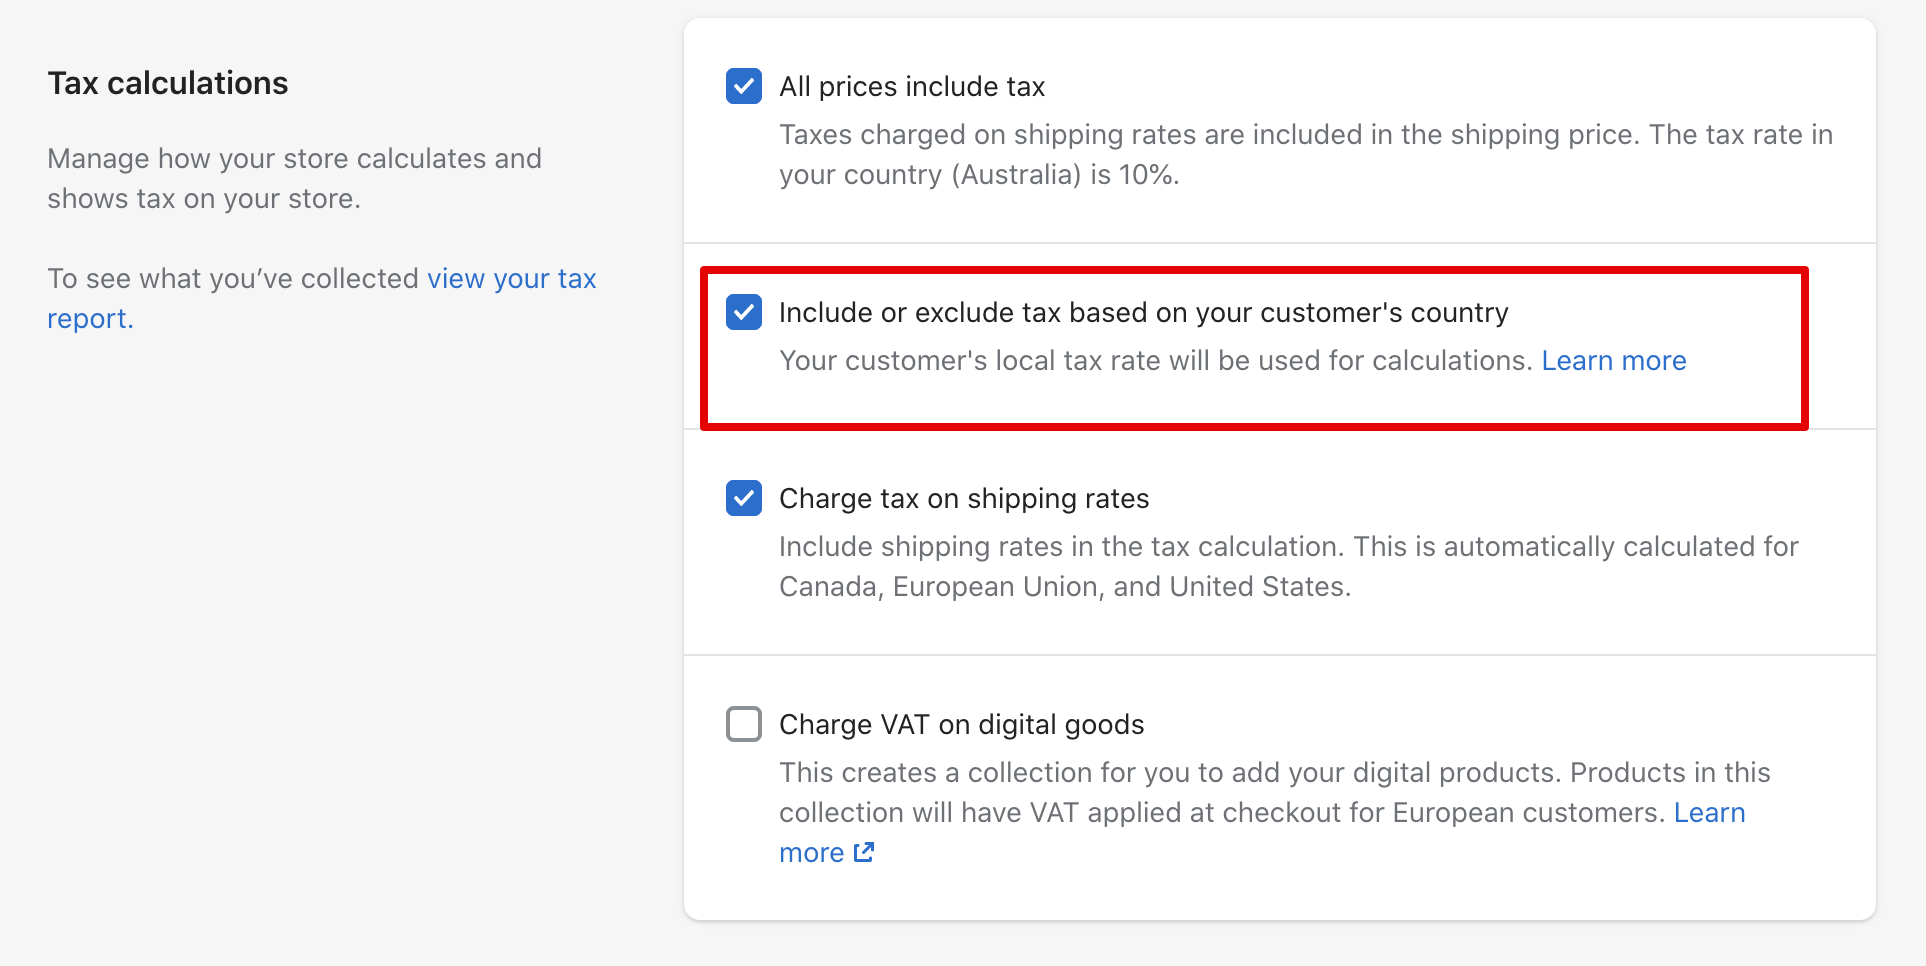 screenshot of the Include or exclude tax based on your customer's country setting